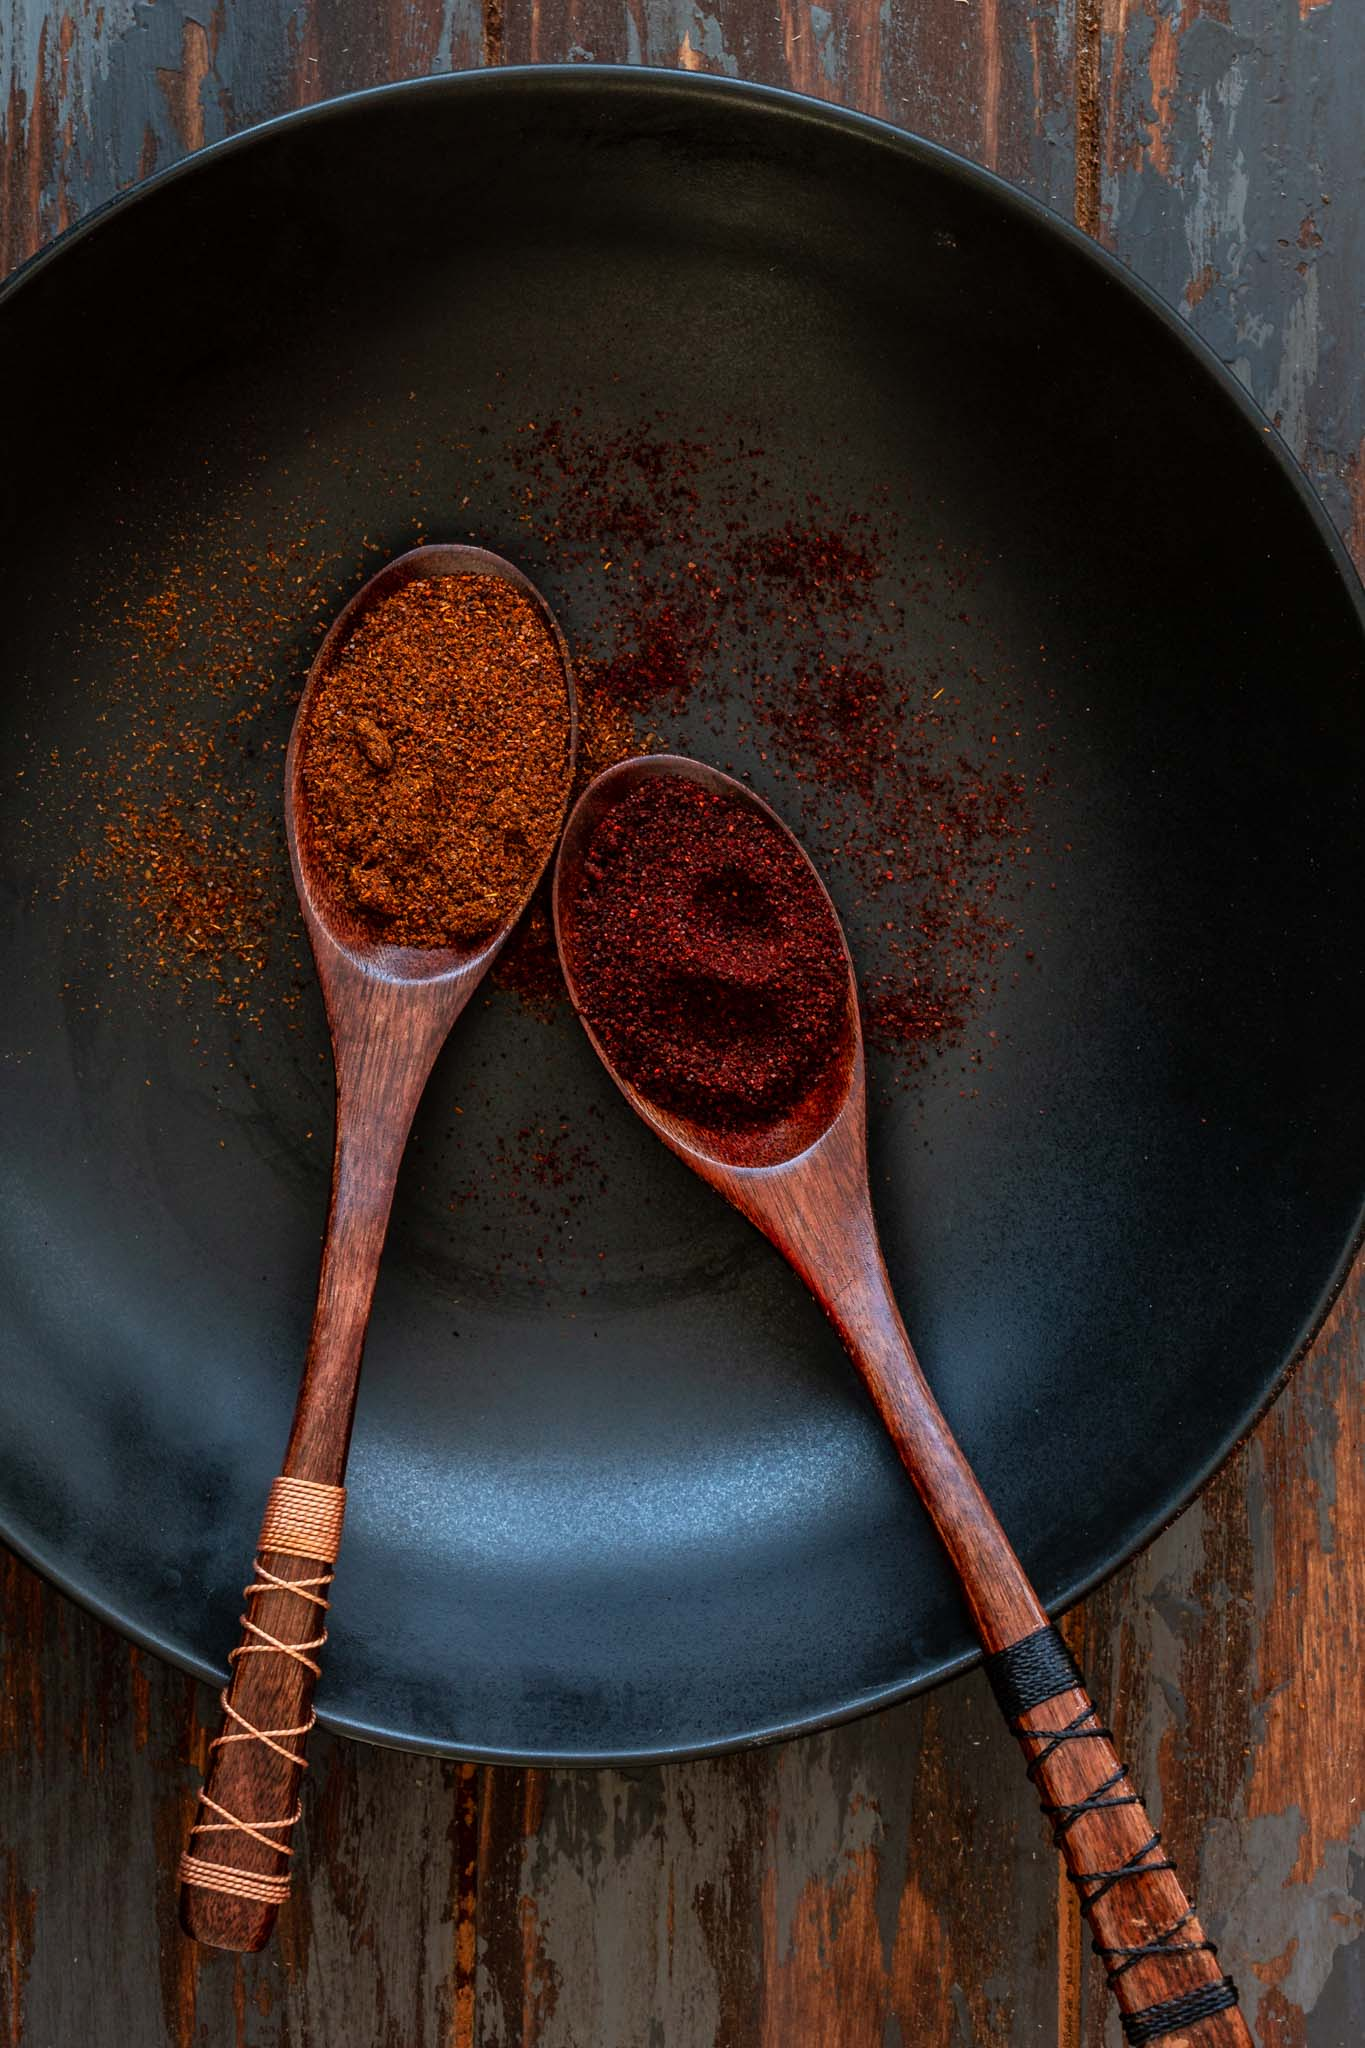 Chili Powder and Chipotle Powder